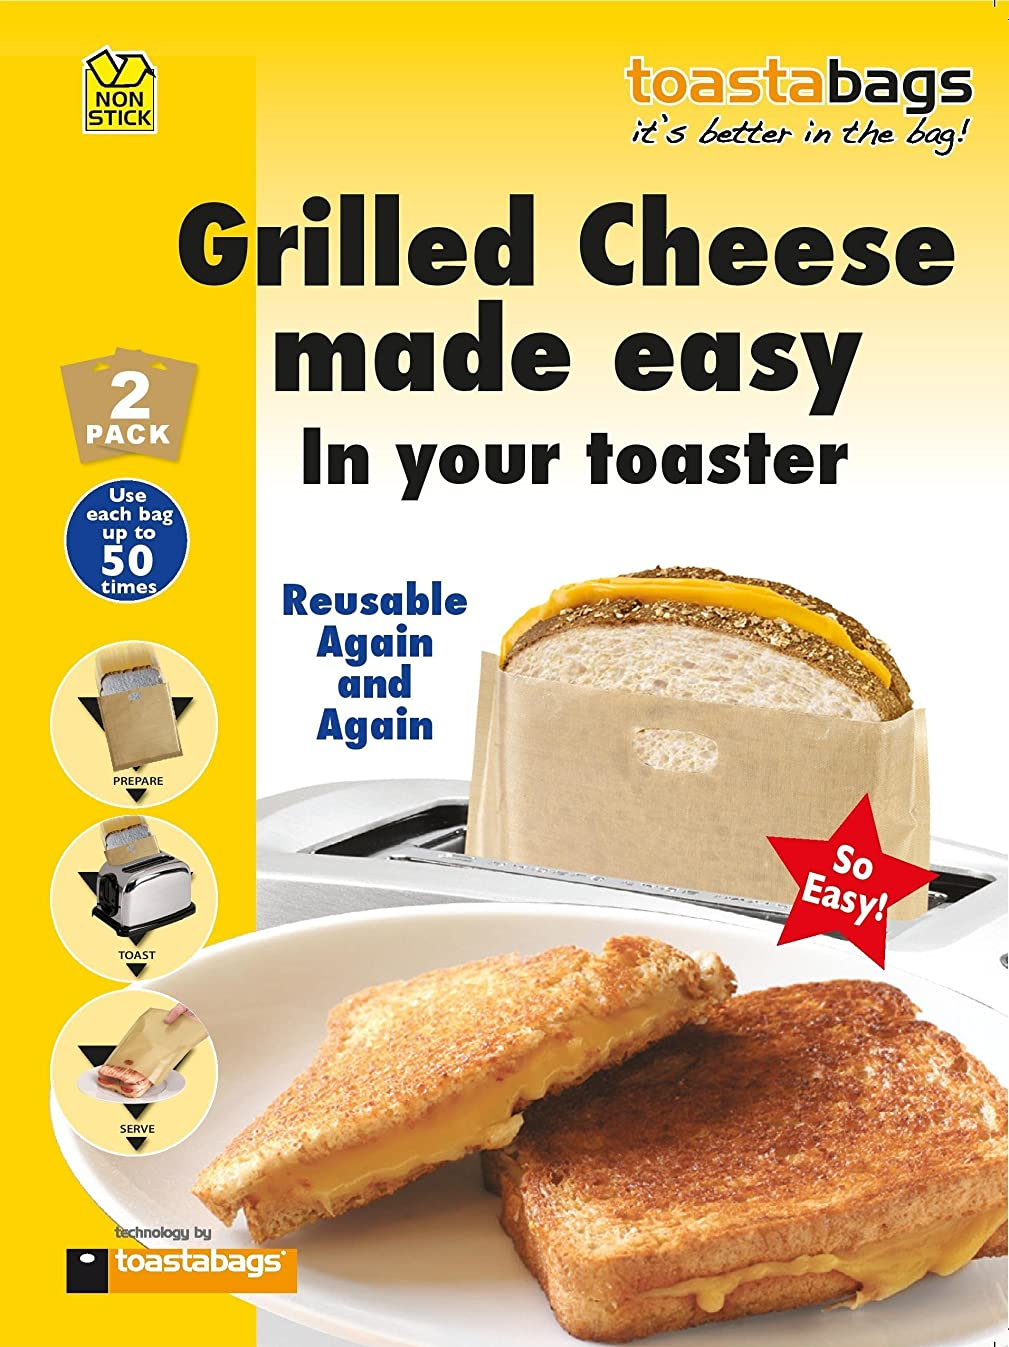 Toastabags - Grilled Chee Size 2ct Toastabags - Grilled Cheese 2ct